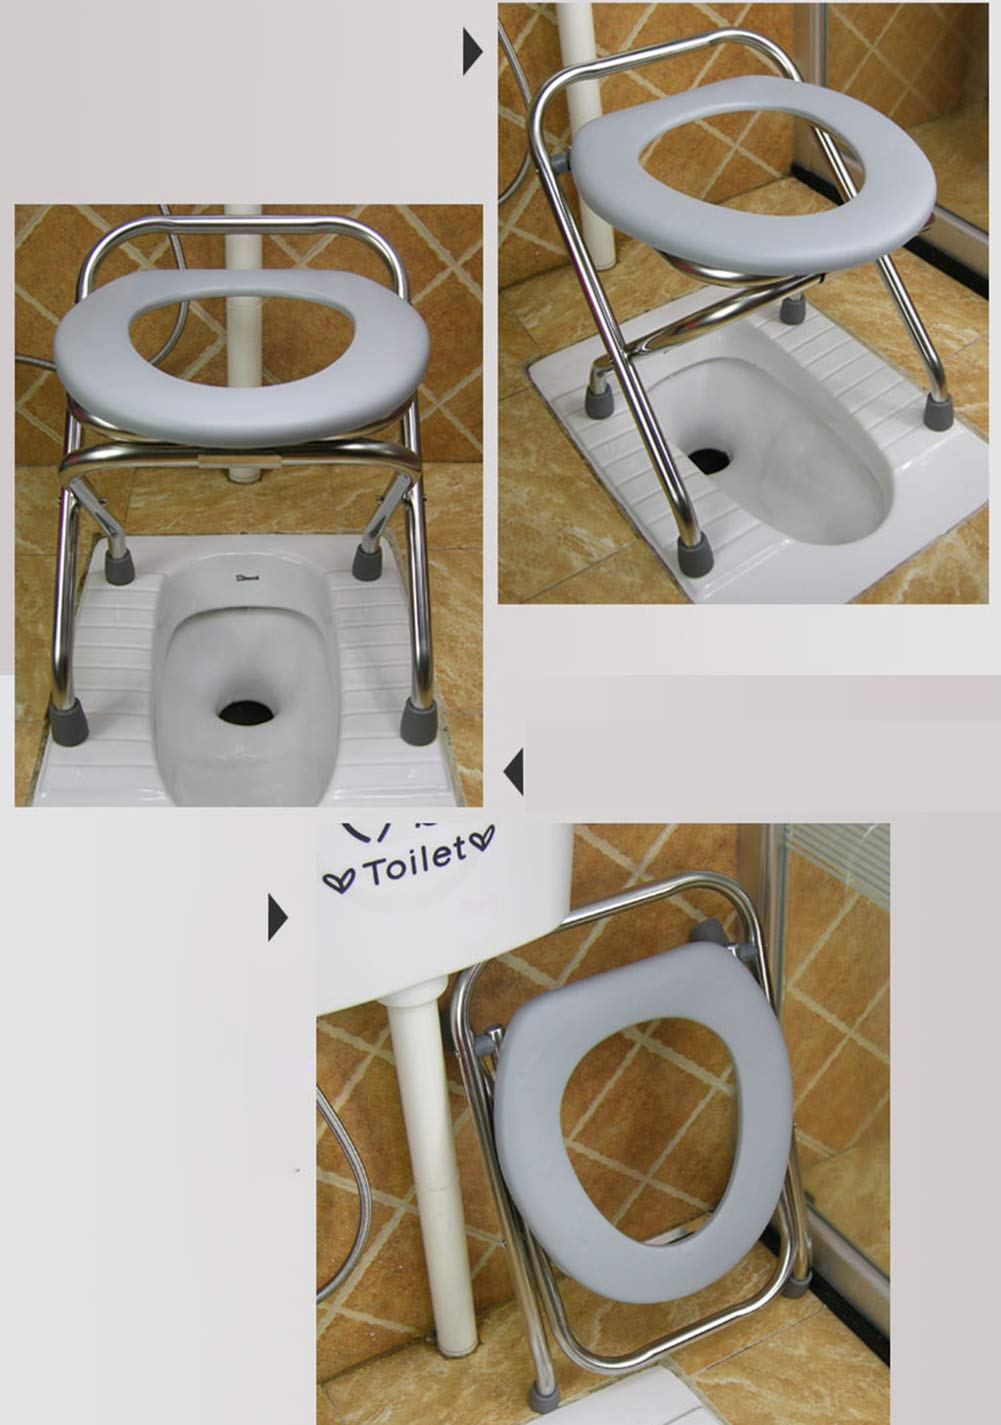 Elderly Toilet Chair Folding Disabled Toilet Commode Chair Portable Mobile Skidproof Pregnant Woman Bathroom Chairs /& Stool Potty Chair 38Cm//32Cm Height,32Cm